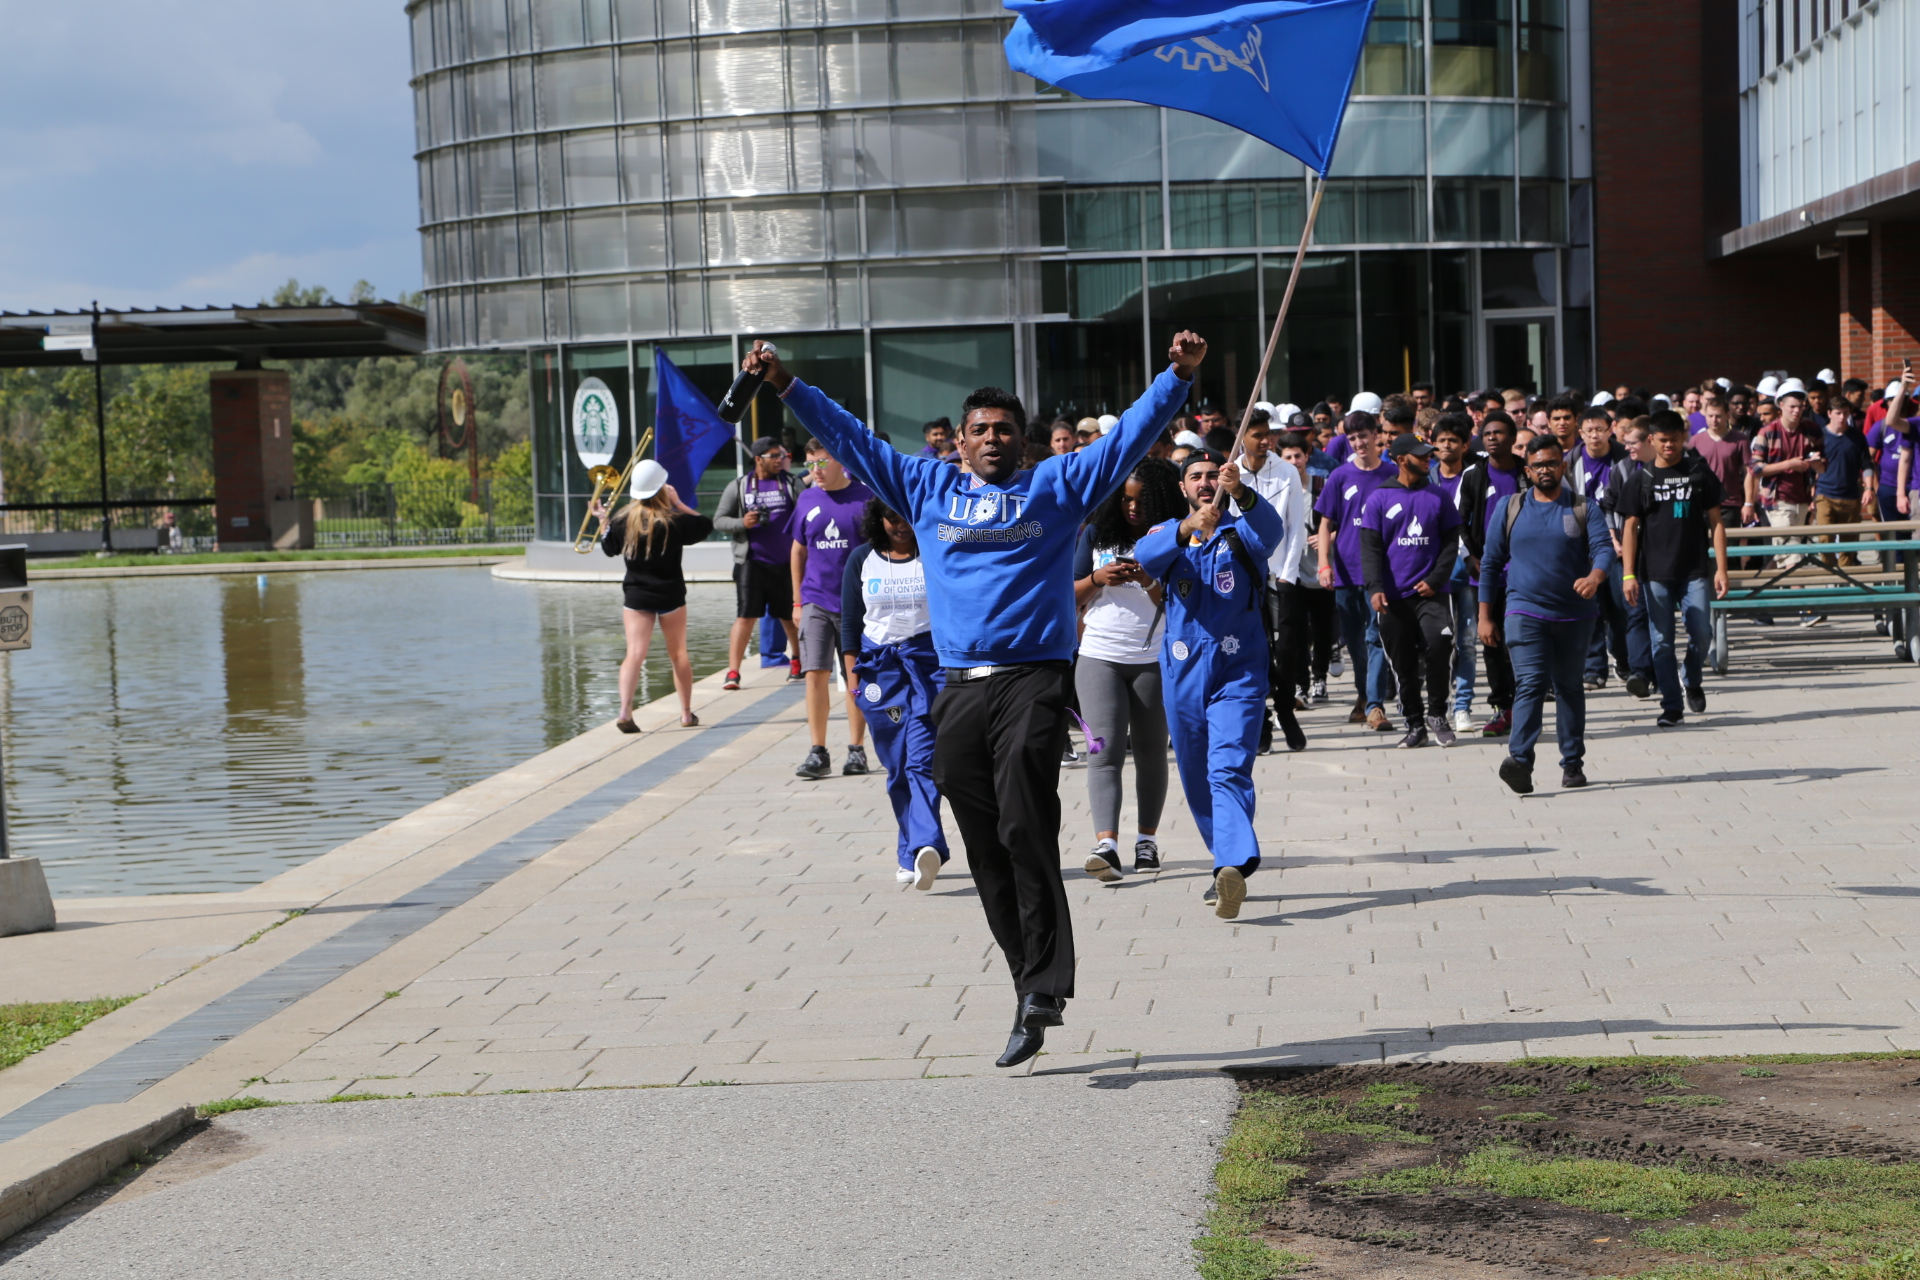 engsoc running with flags at orientation